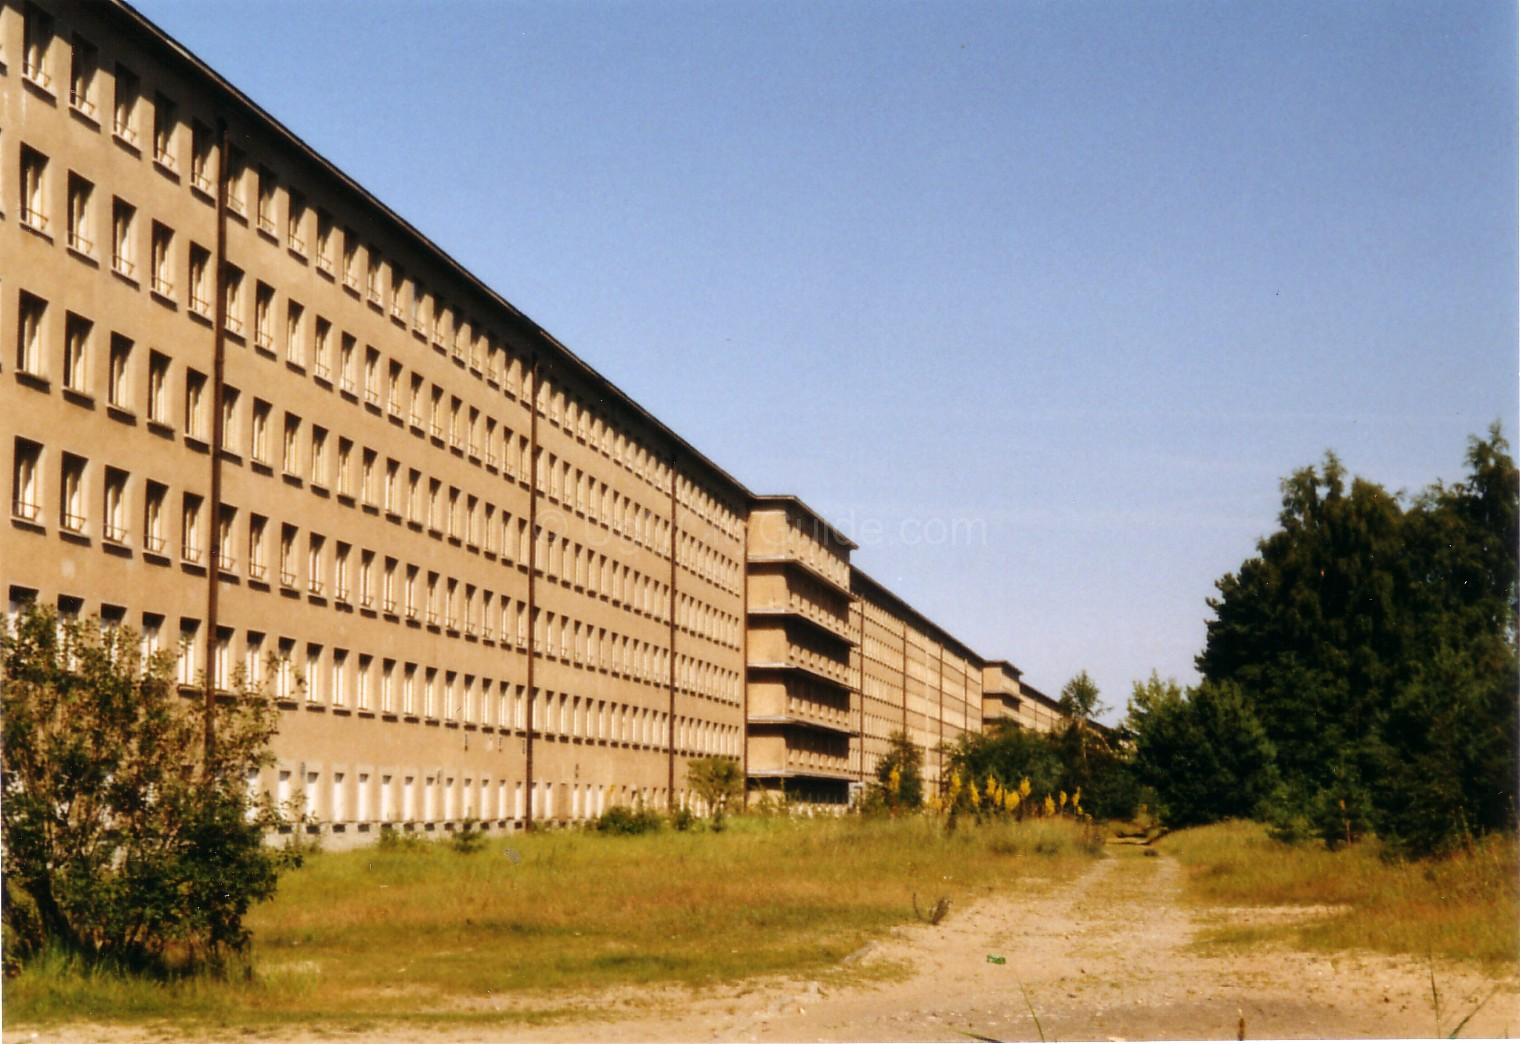 Prora Sea Side (Courtesy of Steffen Löwe)